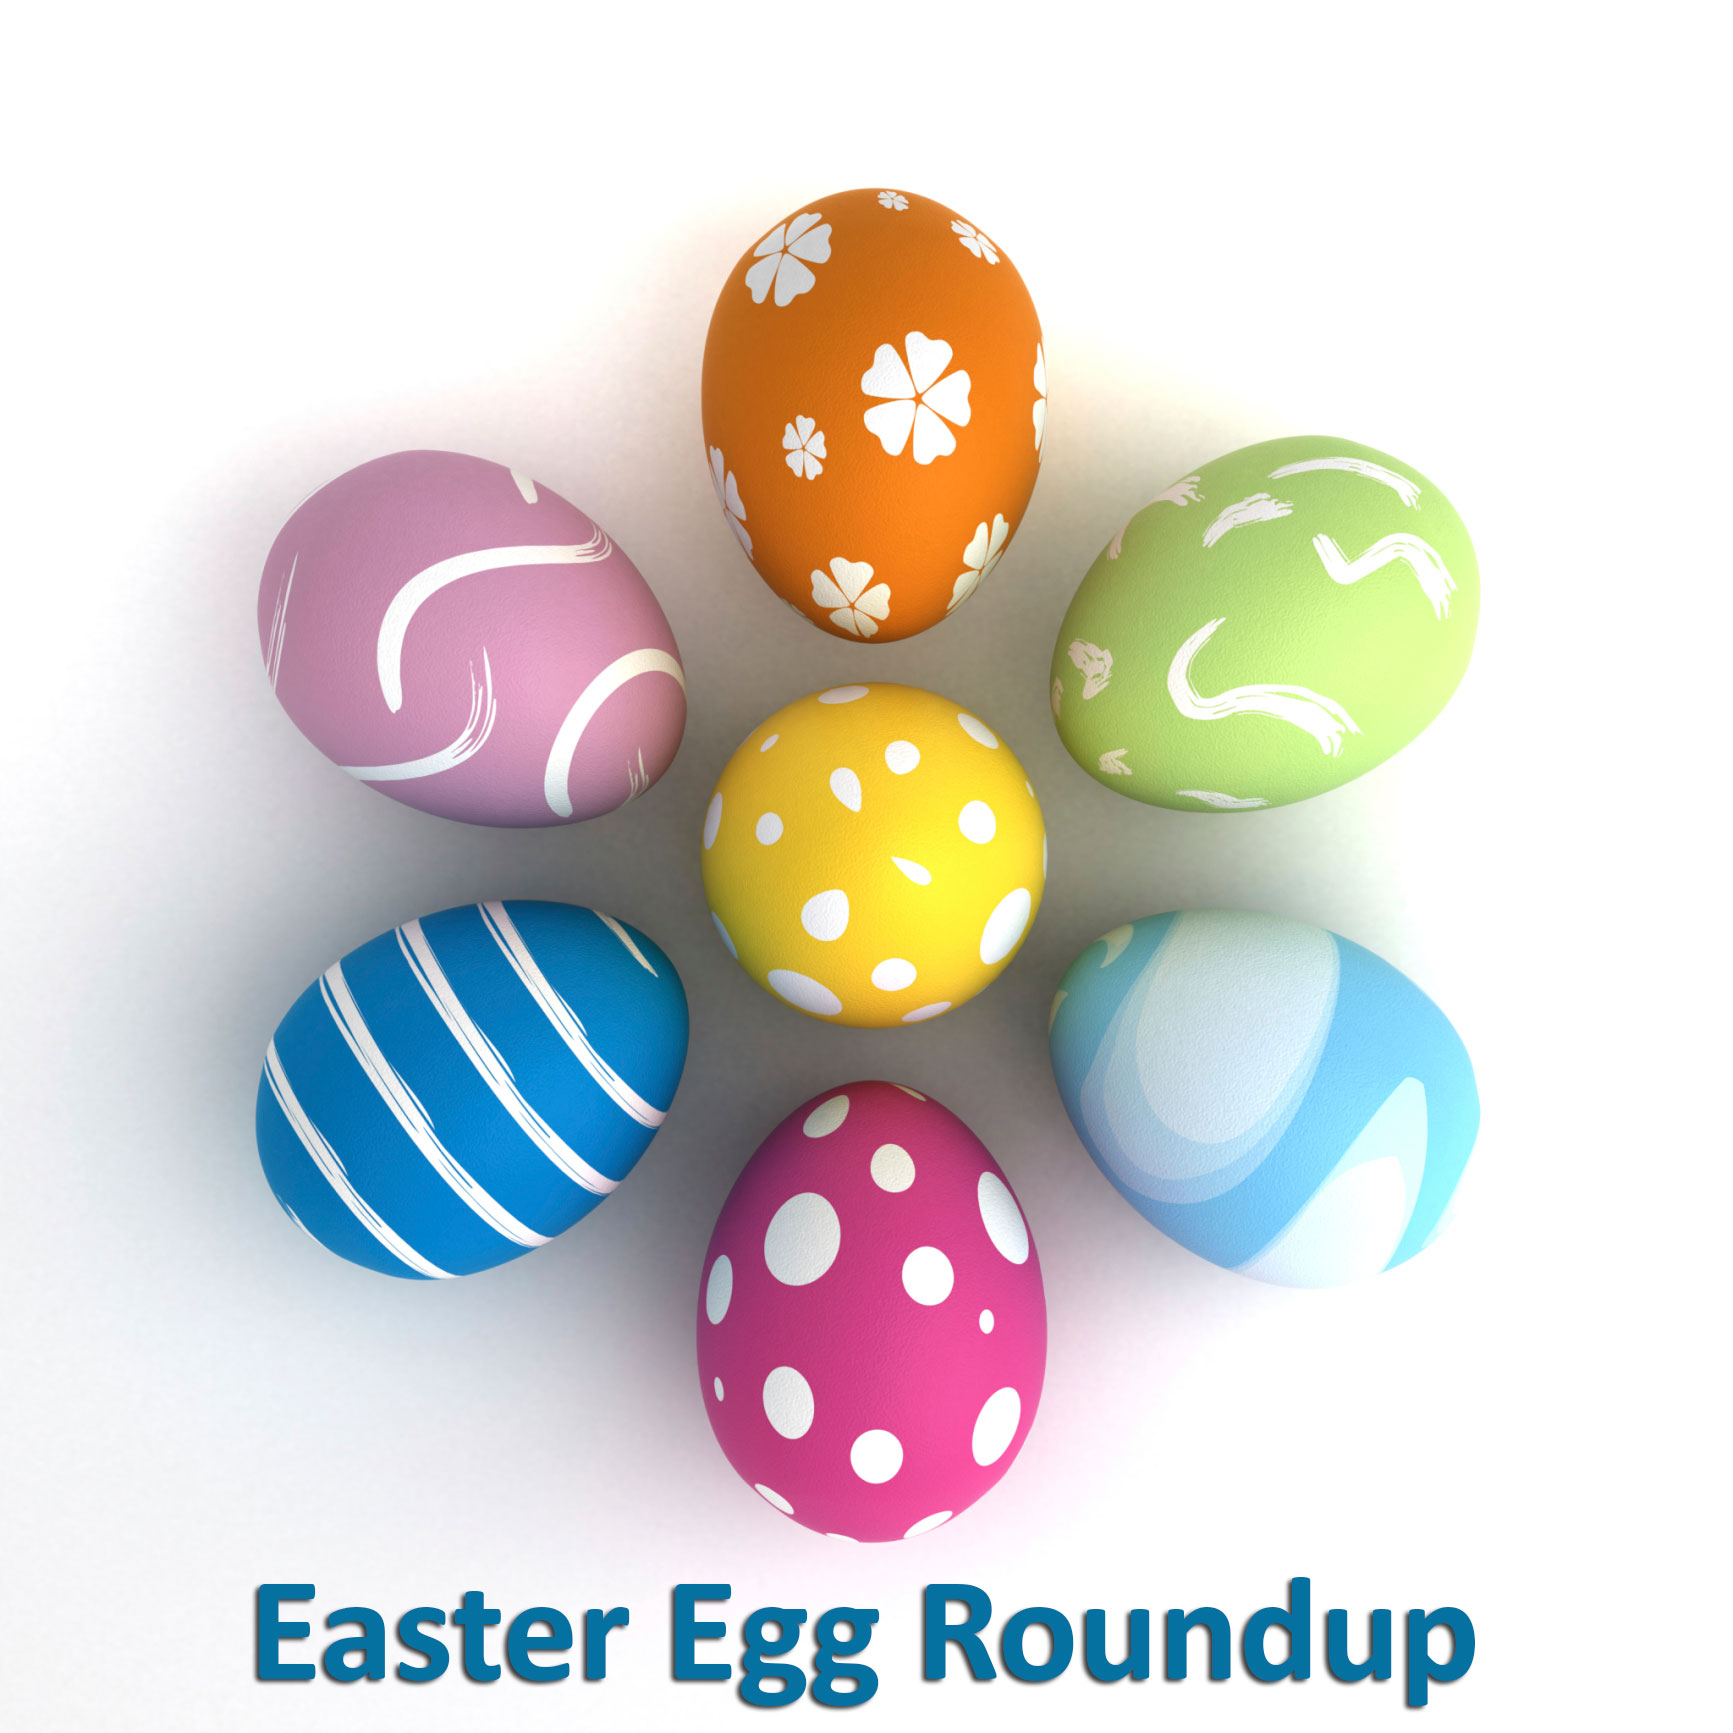 Are you Decorating Easter Eggs This Year?